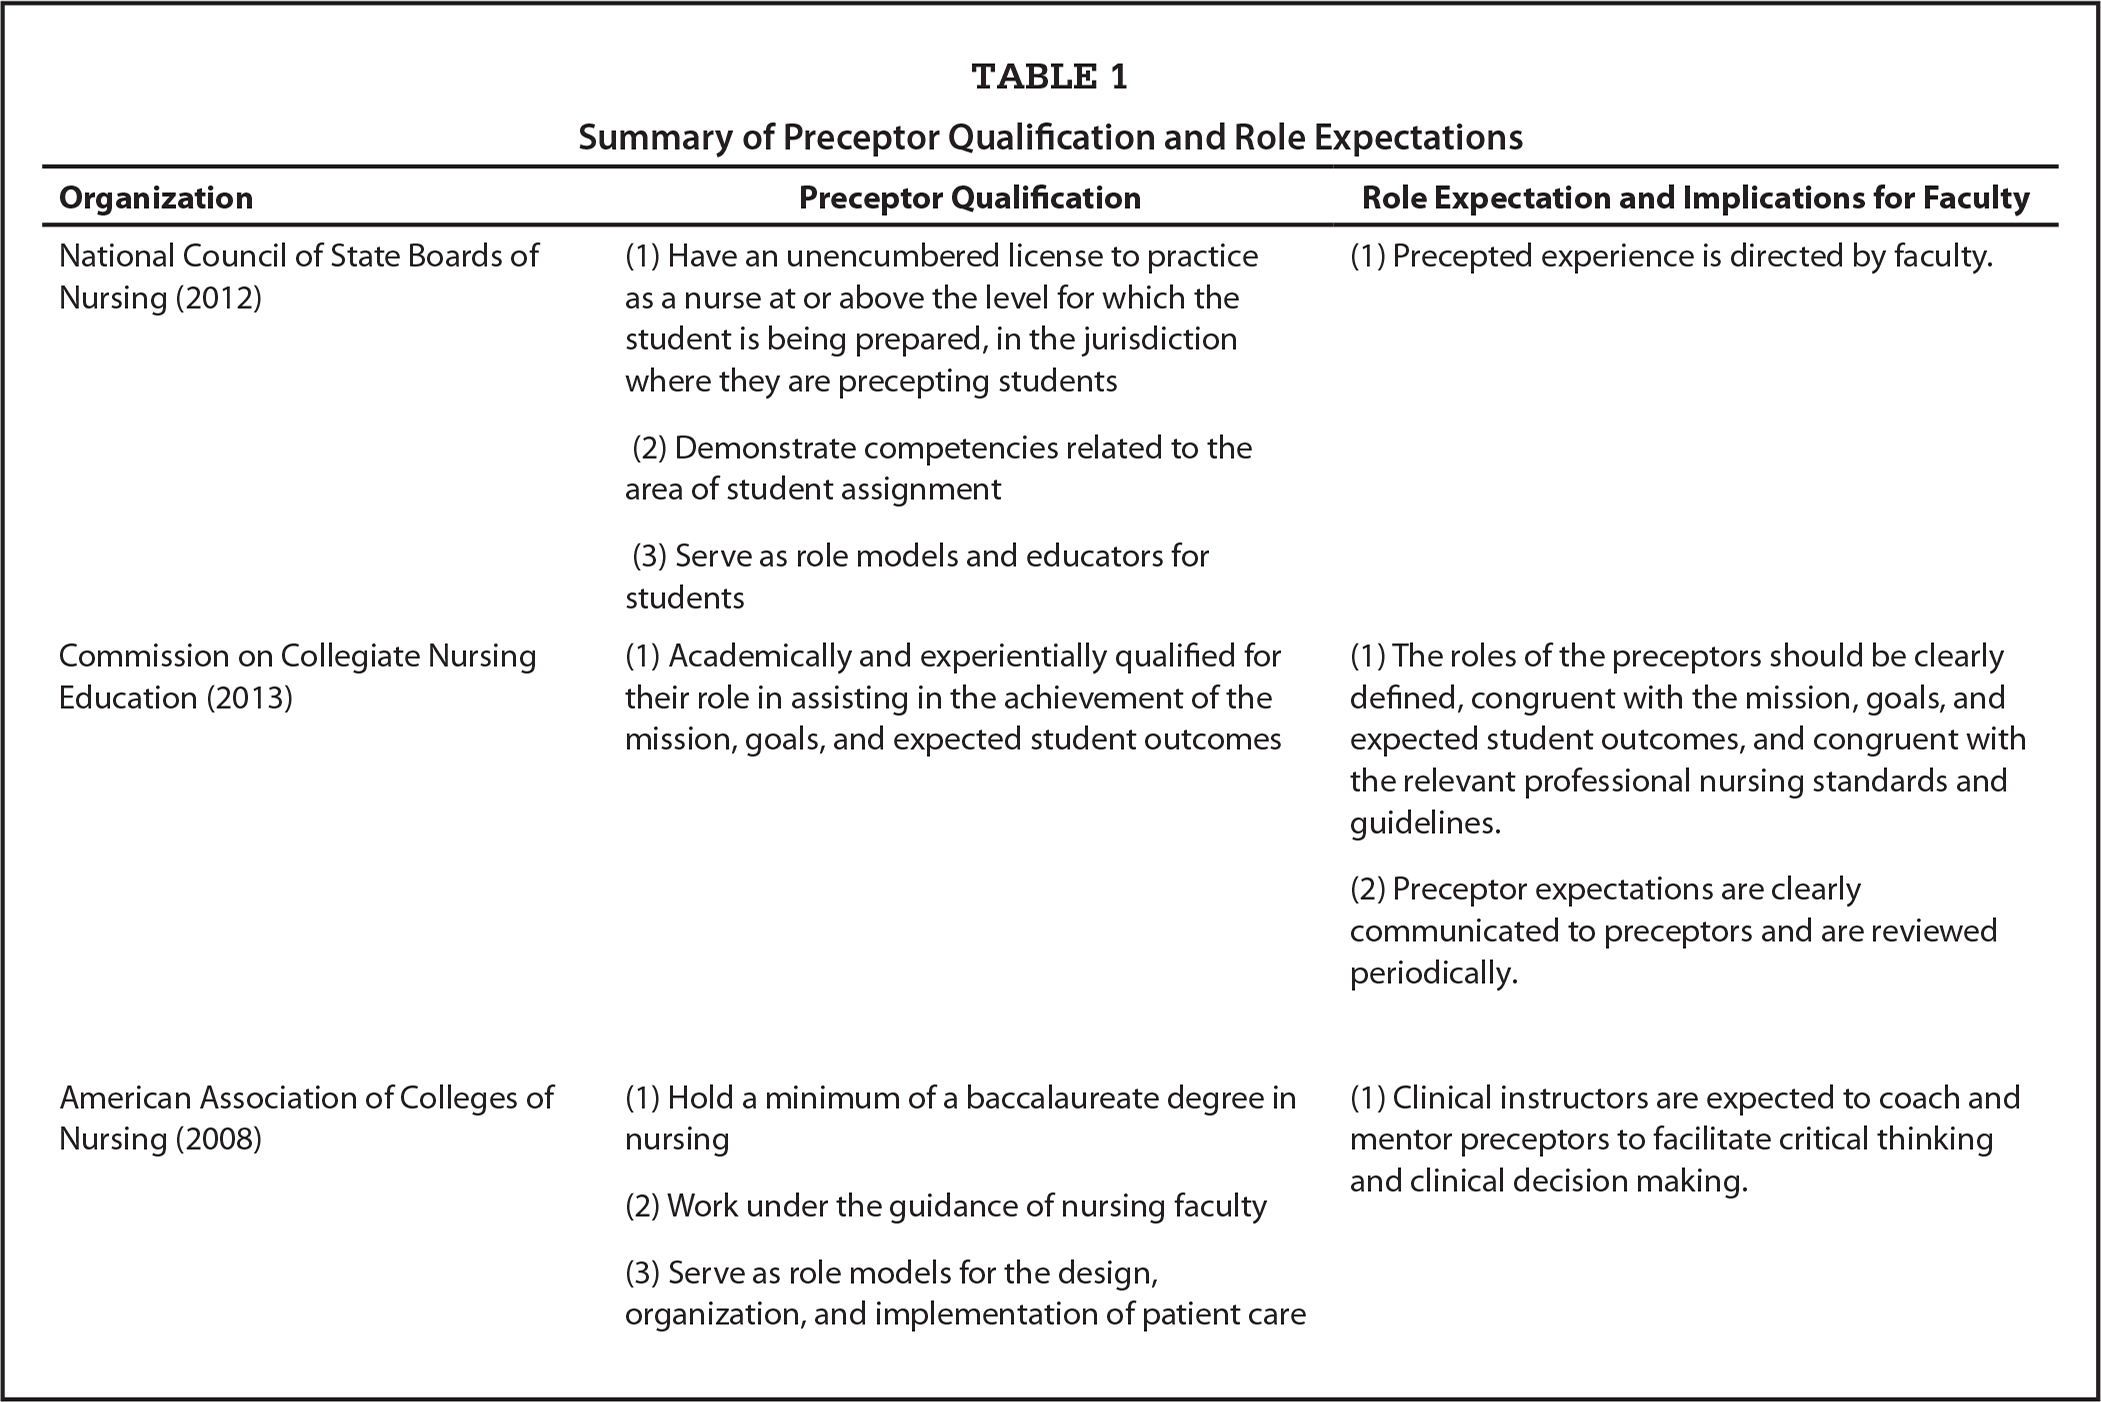 Summary of Preceptor Qualification and Role Expectations